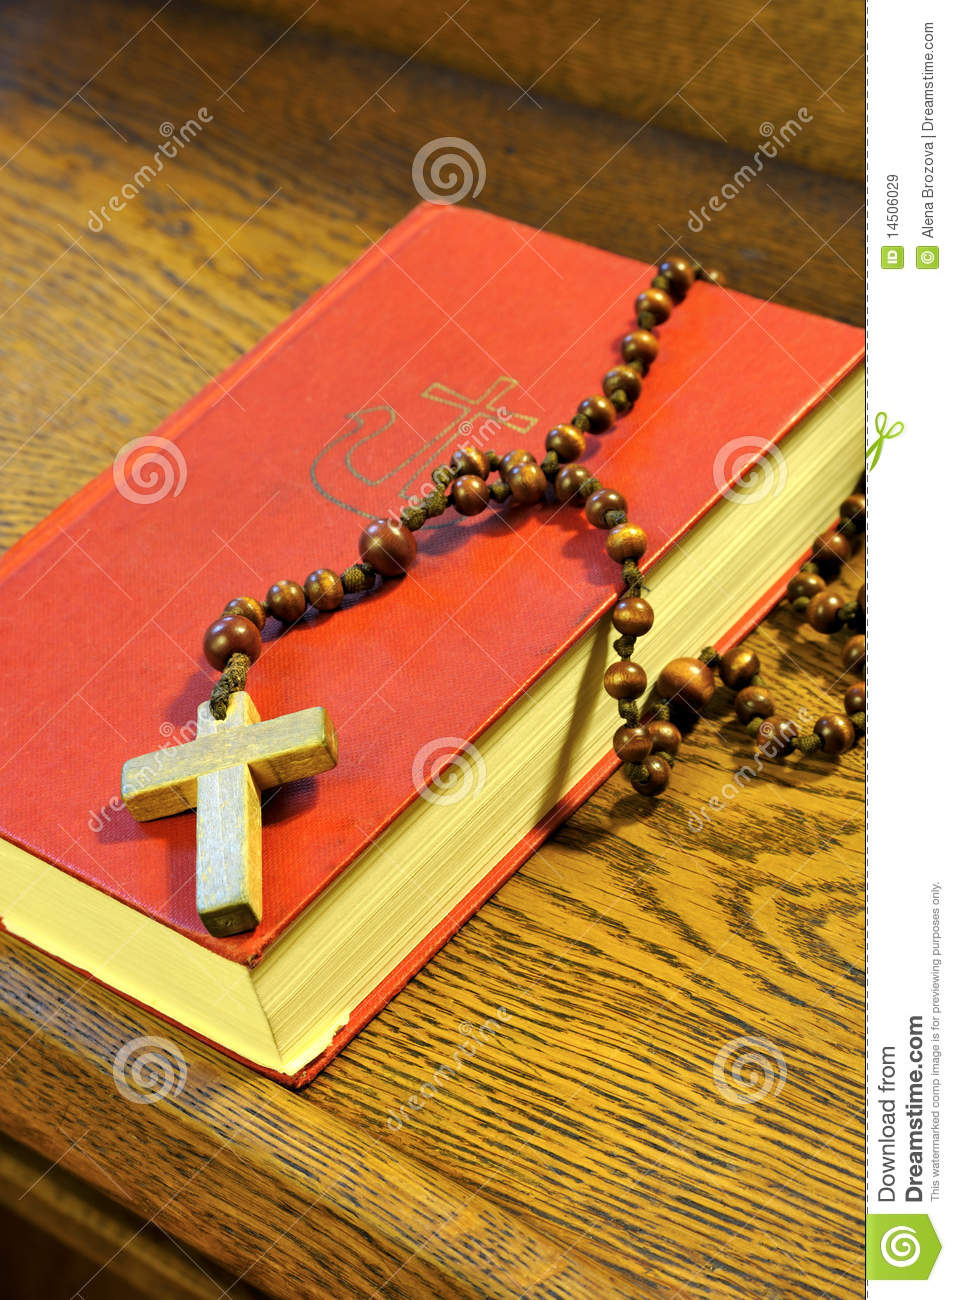 Hymnal book and wooden rosary bead